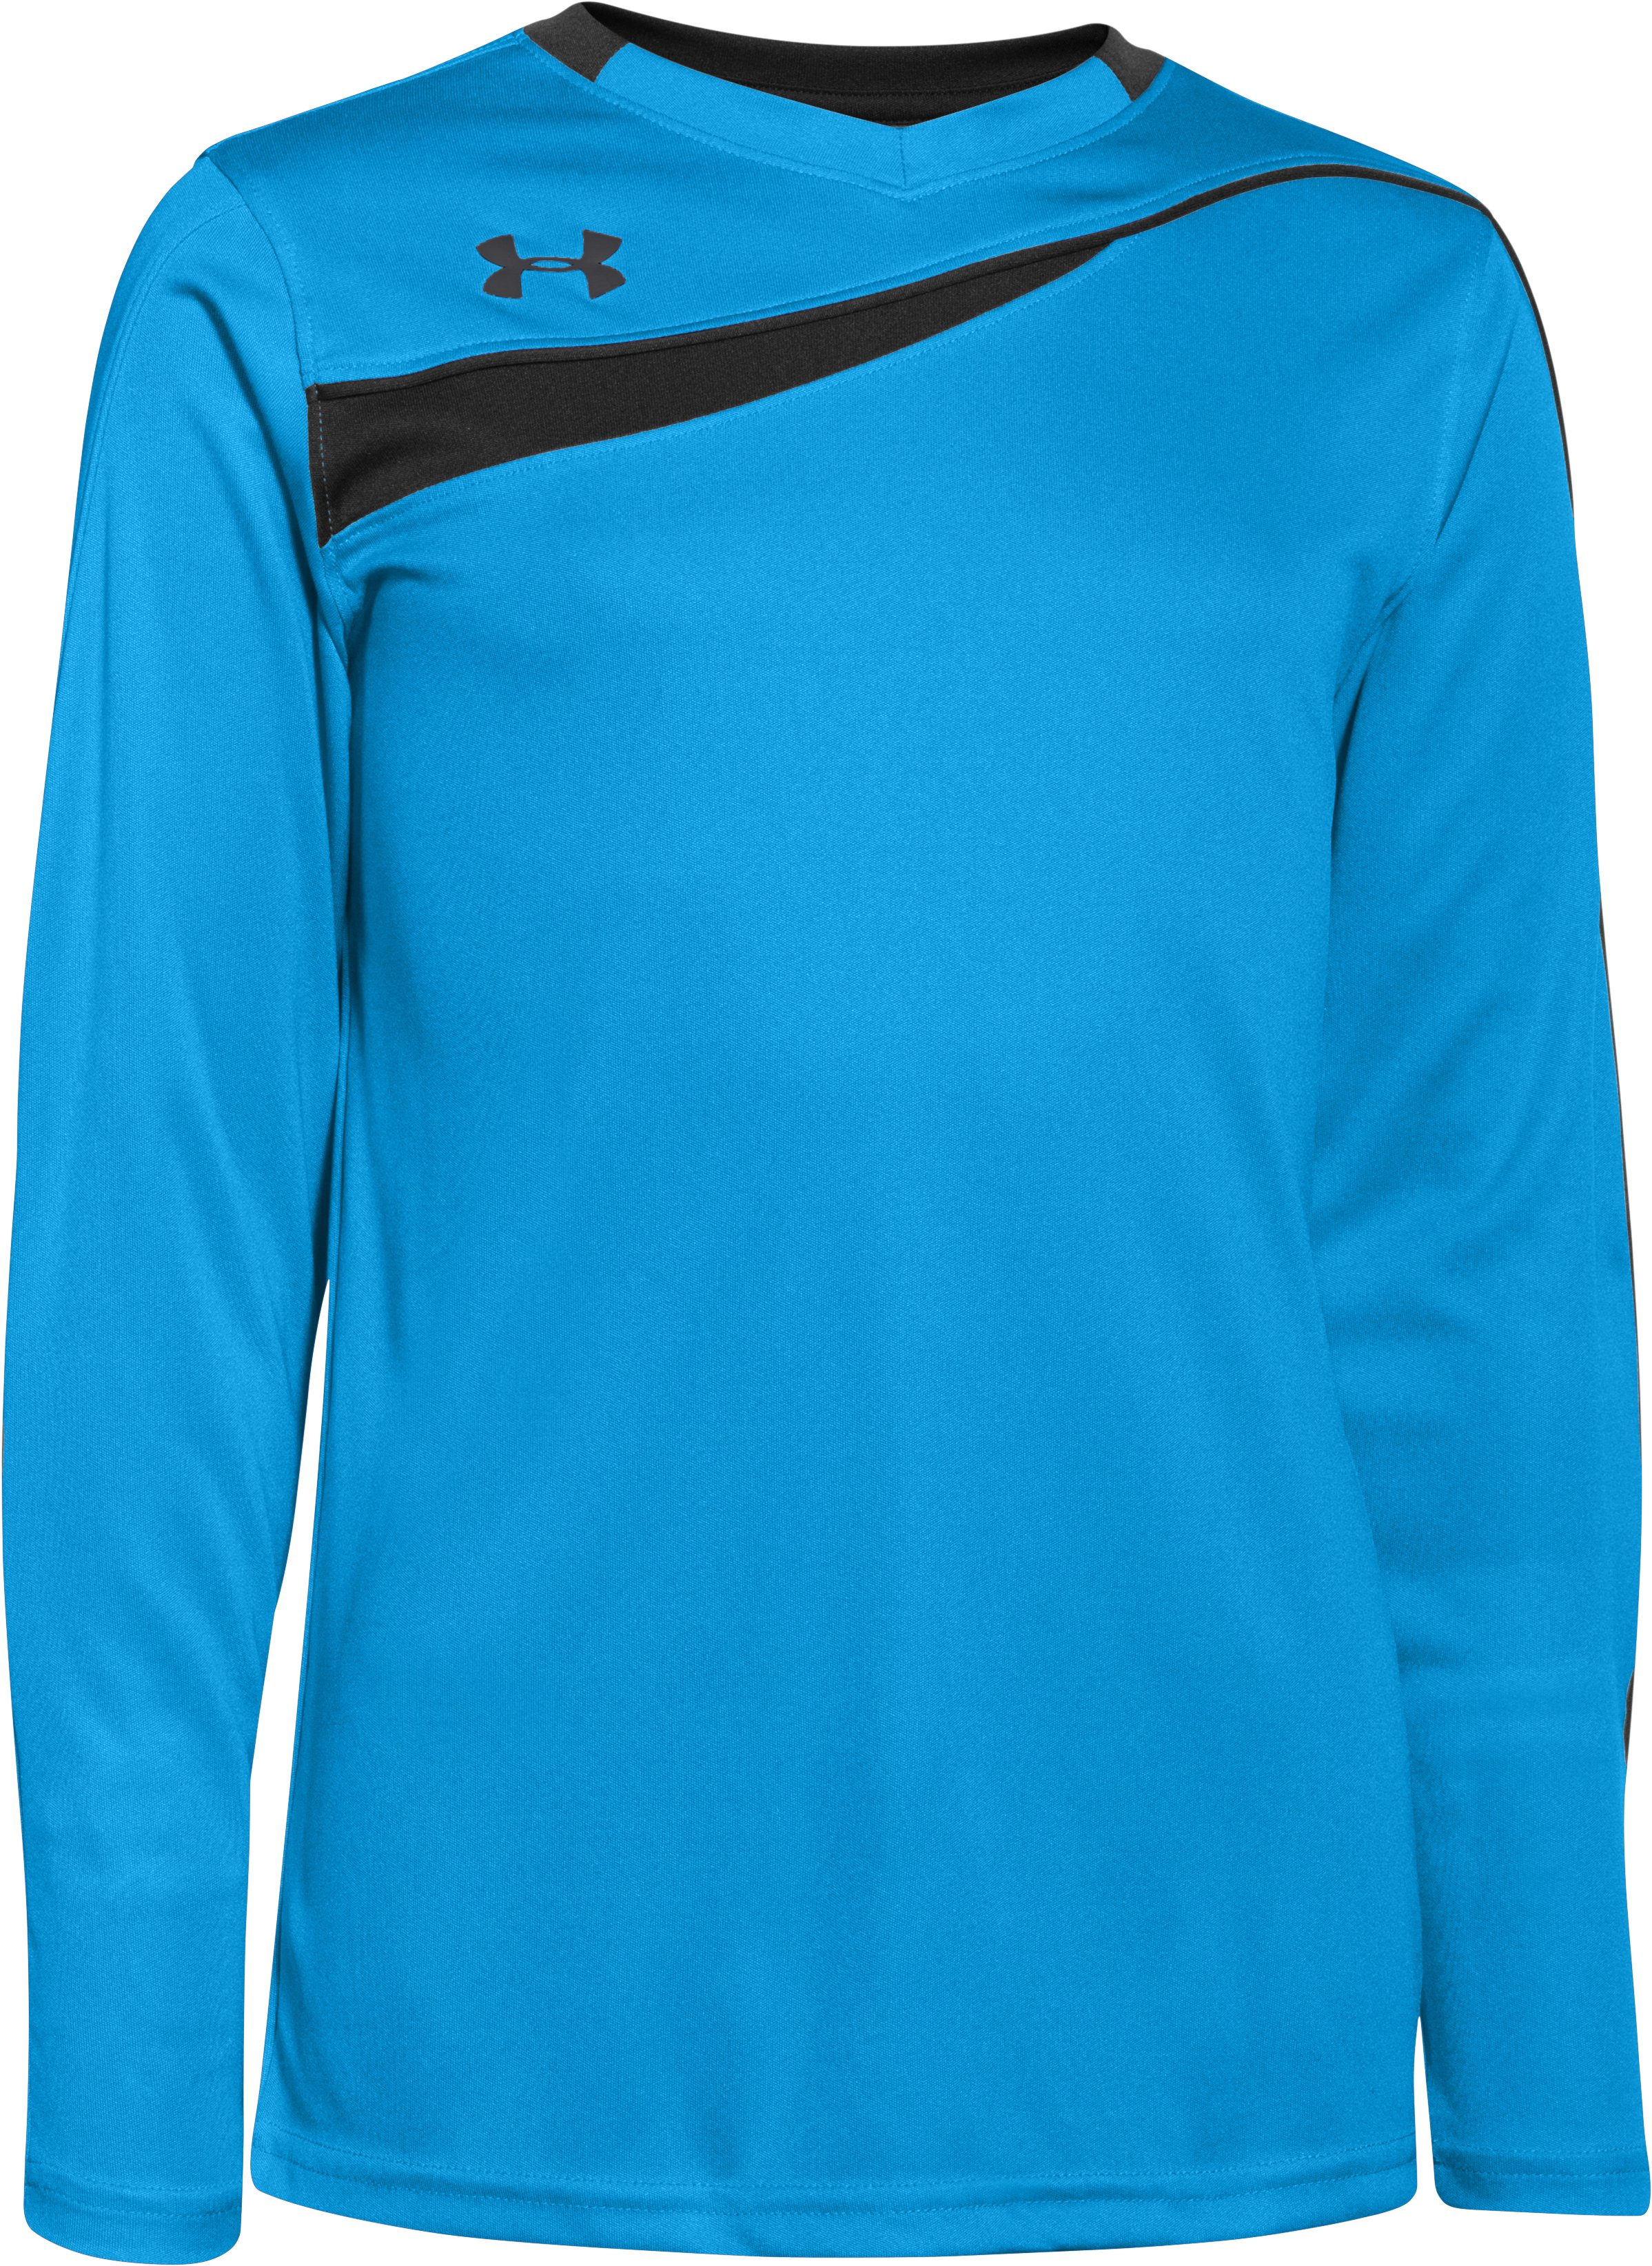 Boys' UA Horizontal Goalkeeper Jersey, Capri